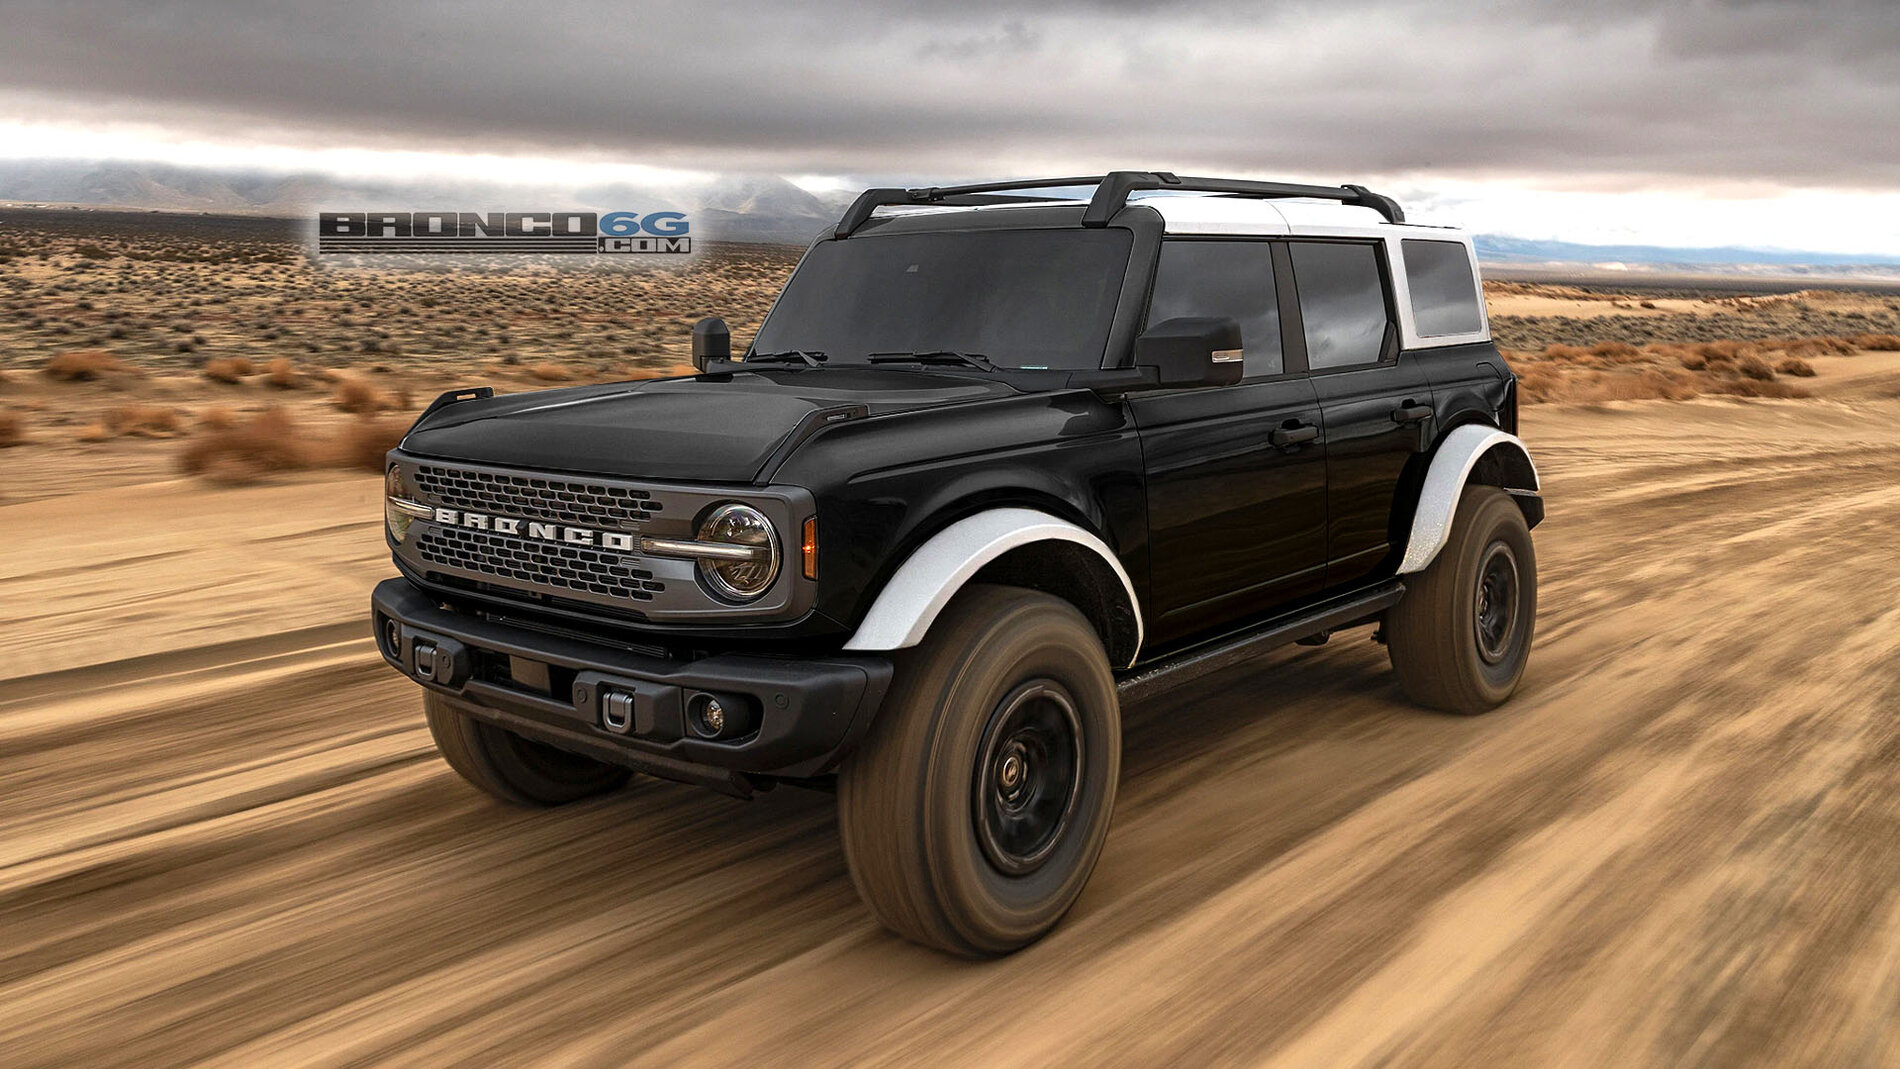 2021 Ford Bronco Sasquatch Shadow-Black-white-roof-fendersBronco6G.com.jpg